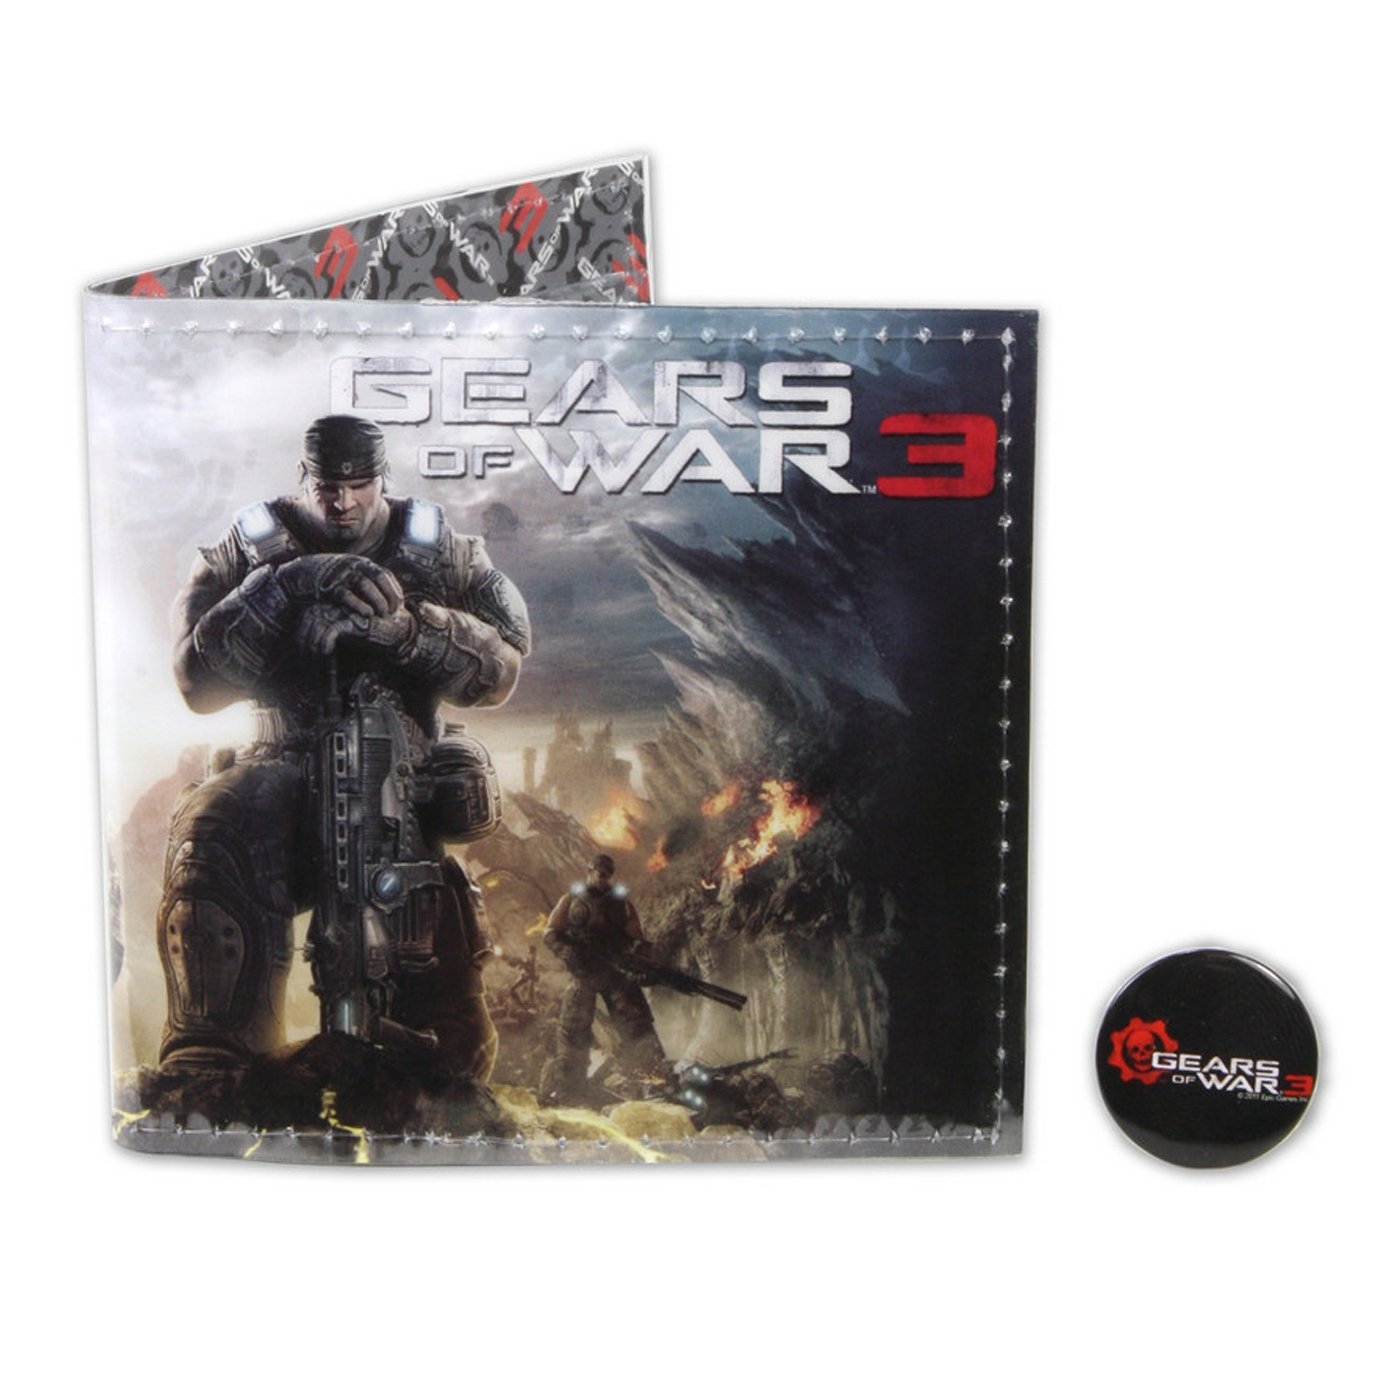 NECA Gears of War 3 Vinyl Wallet with Pin